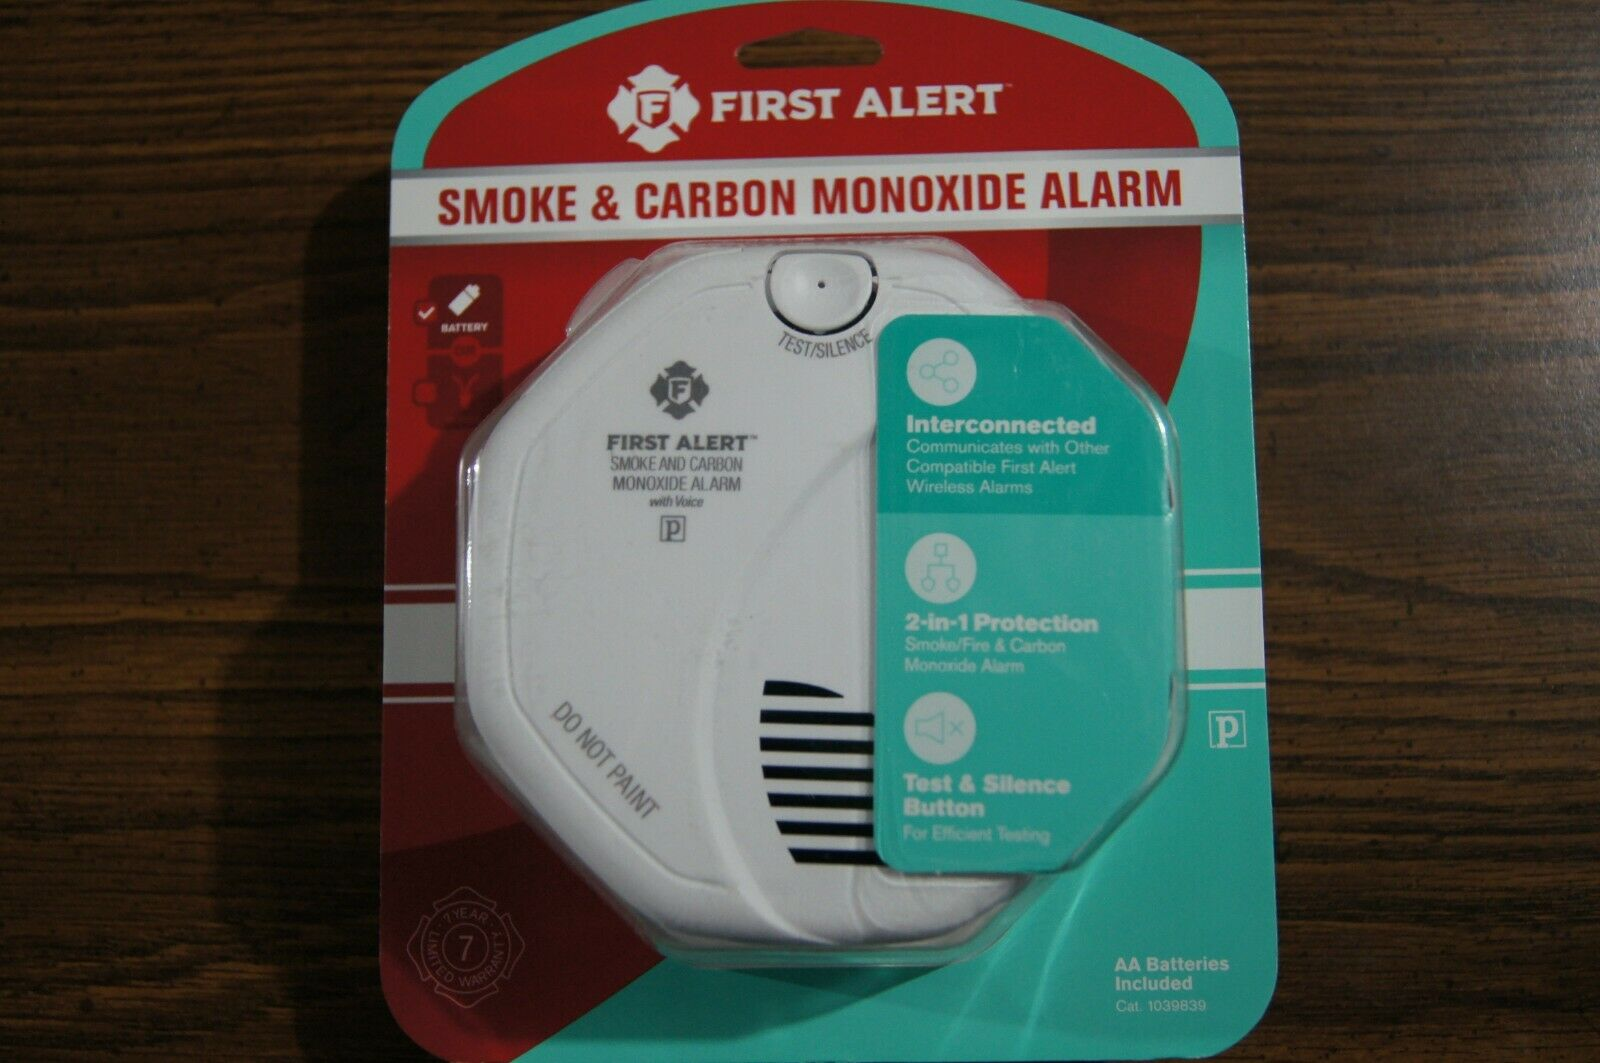 First Alert FAT1039839 Wireless Interconnected Smoke & Carbo